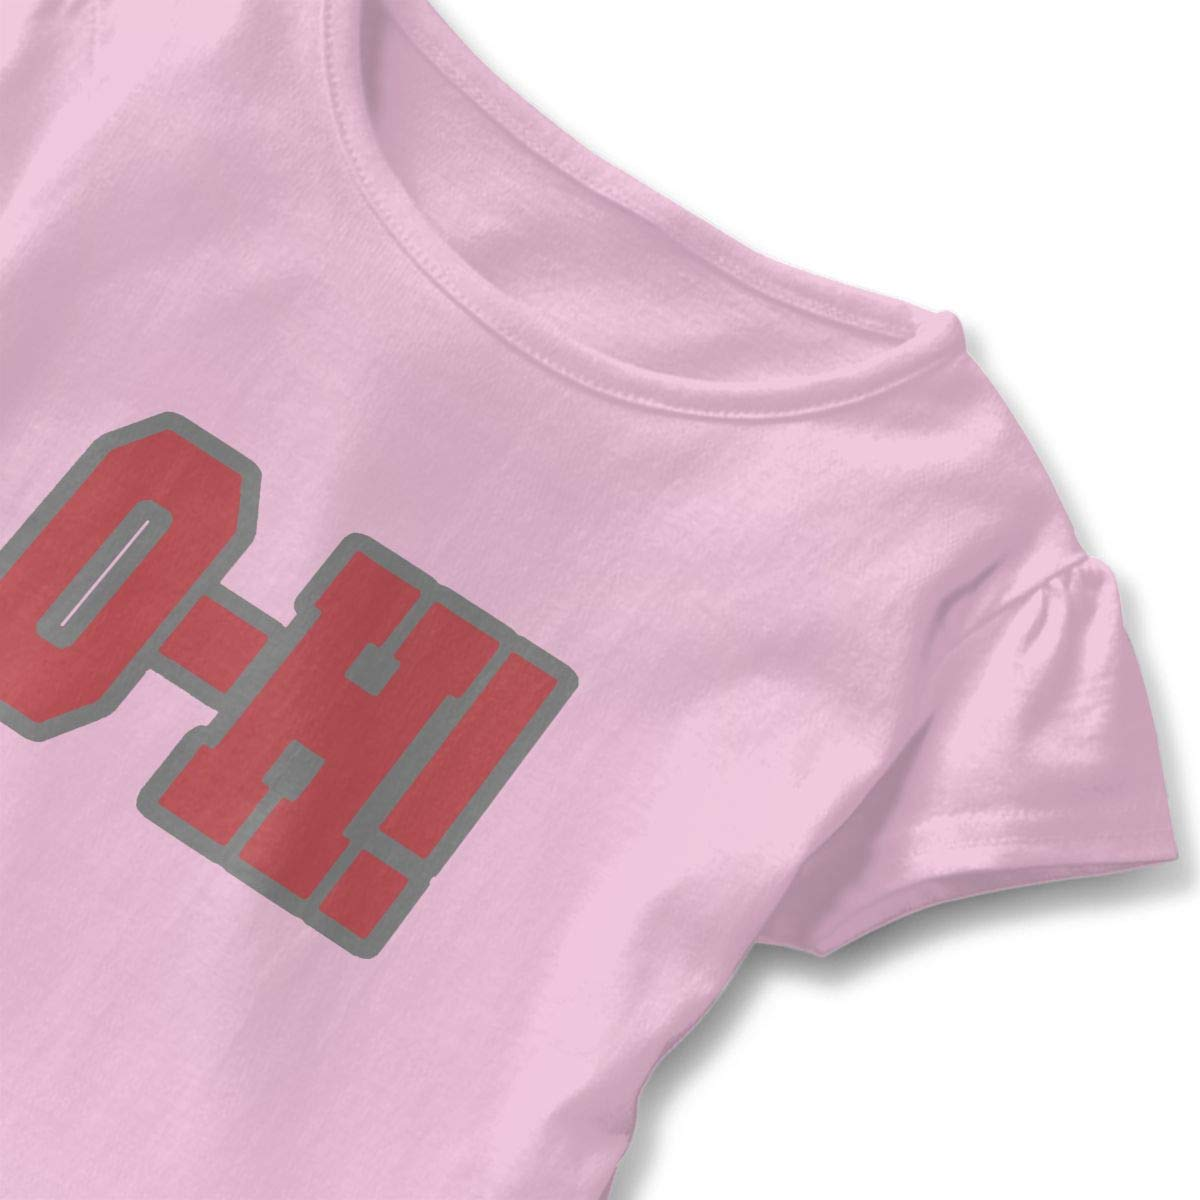 Cute Adorable Printed Patterns Basic Ruffle Tee Shirts with Short Sleeves and O-Neck for Daily Party School Outside Playing Pink O-h